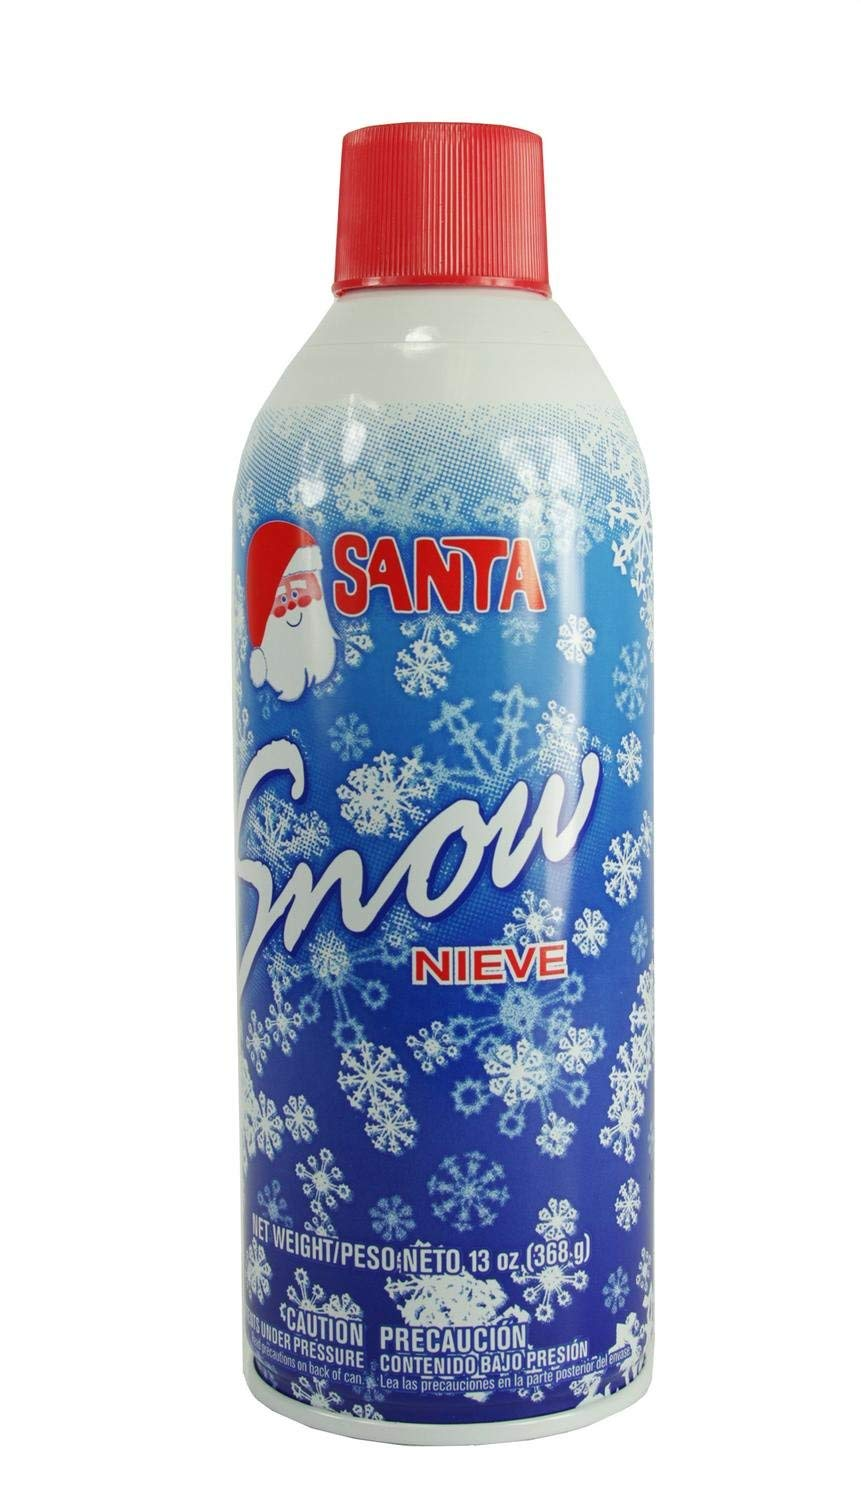 Create your own winter wonderland with this Snow Spray.